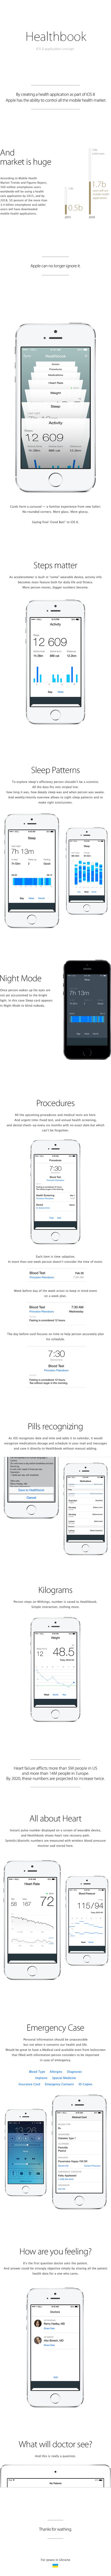 Healthbook iOS 8 concept